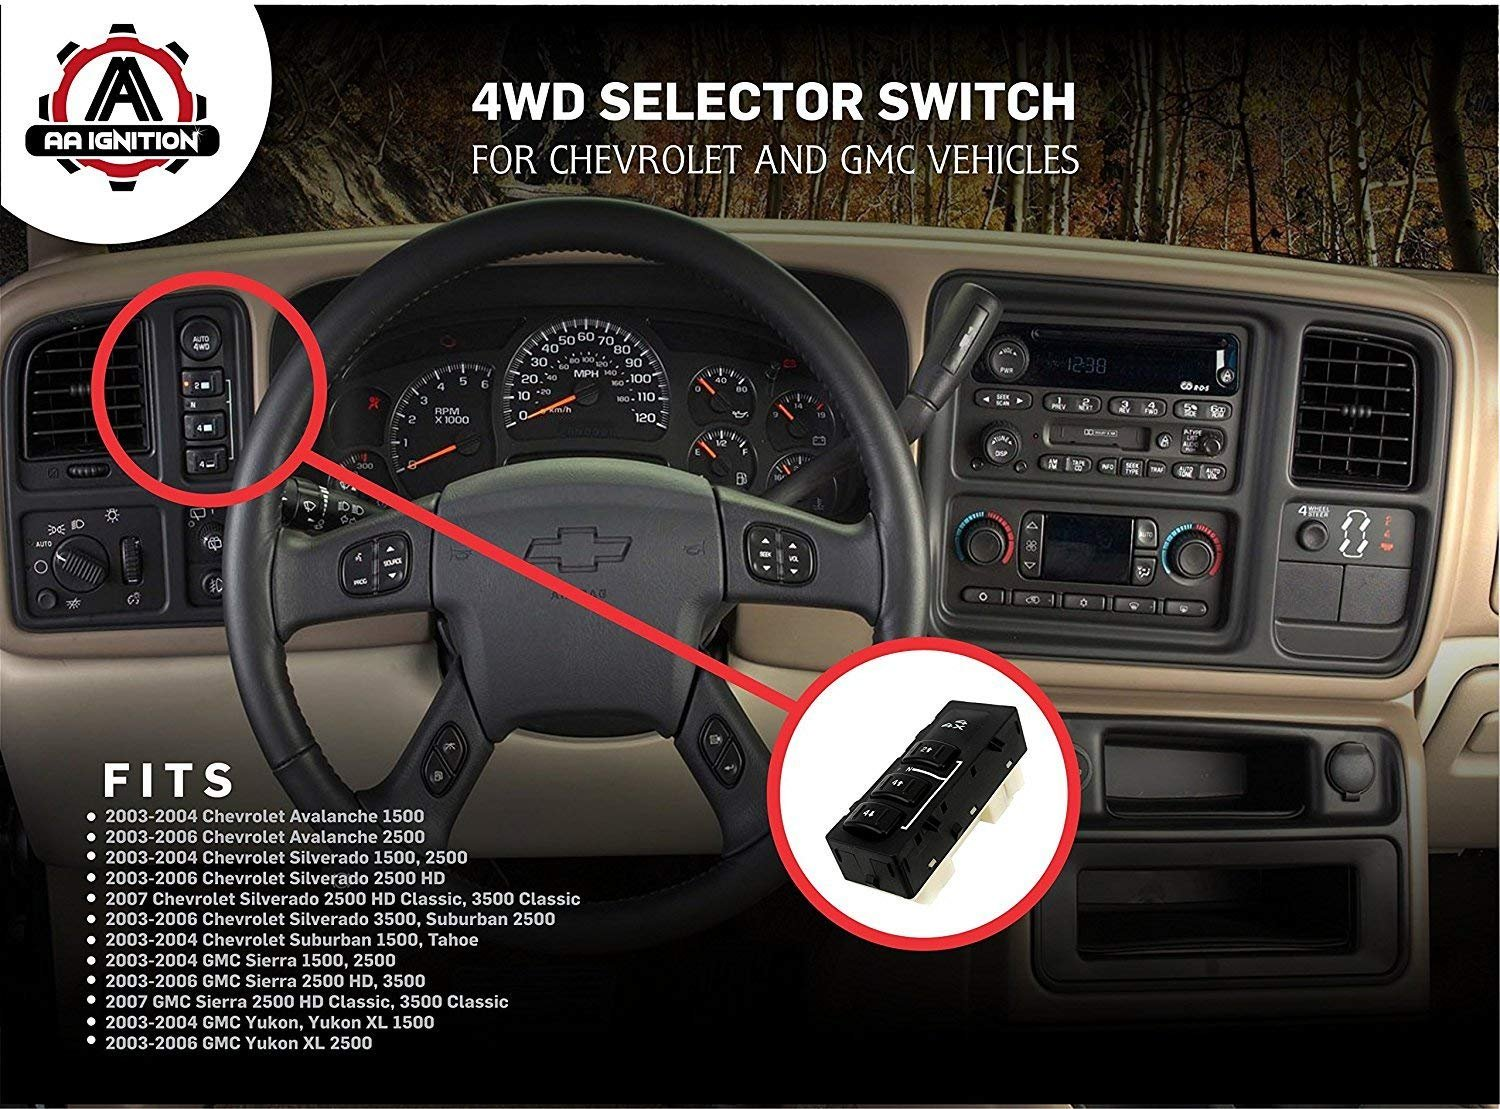 19259312 15164519 4WD Selector Switch 3 Button 4x4 Wheel Drive Without Auto for 2003-2007 Chevy Silverado Suburban Avalanche GMC Yukon XL Sierra 15136040